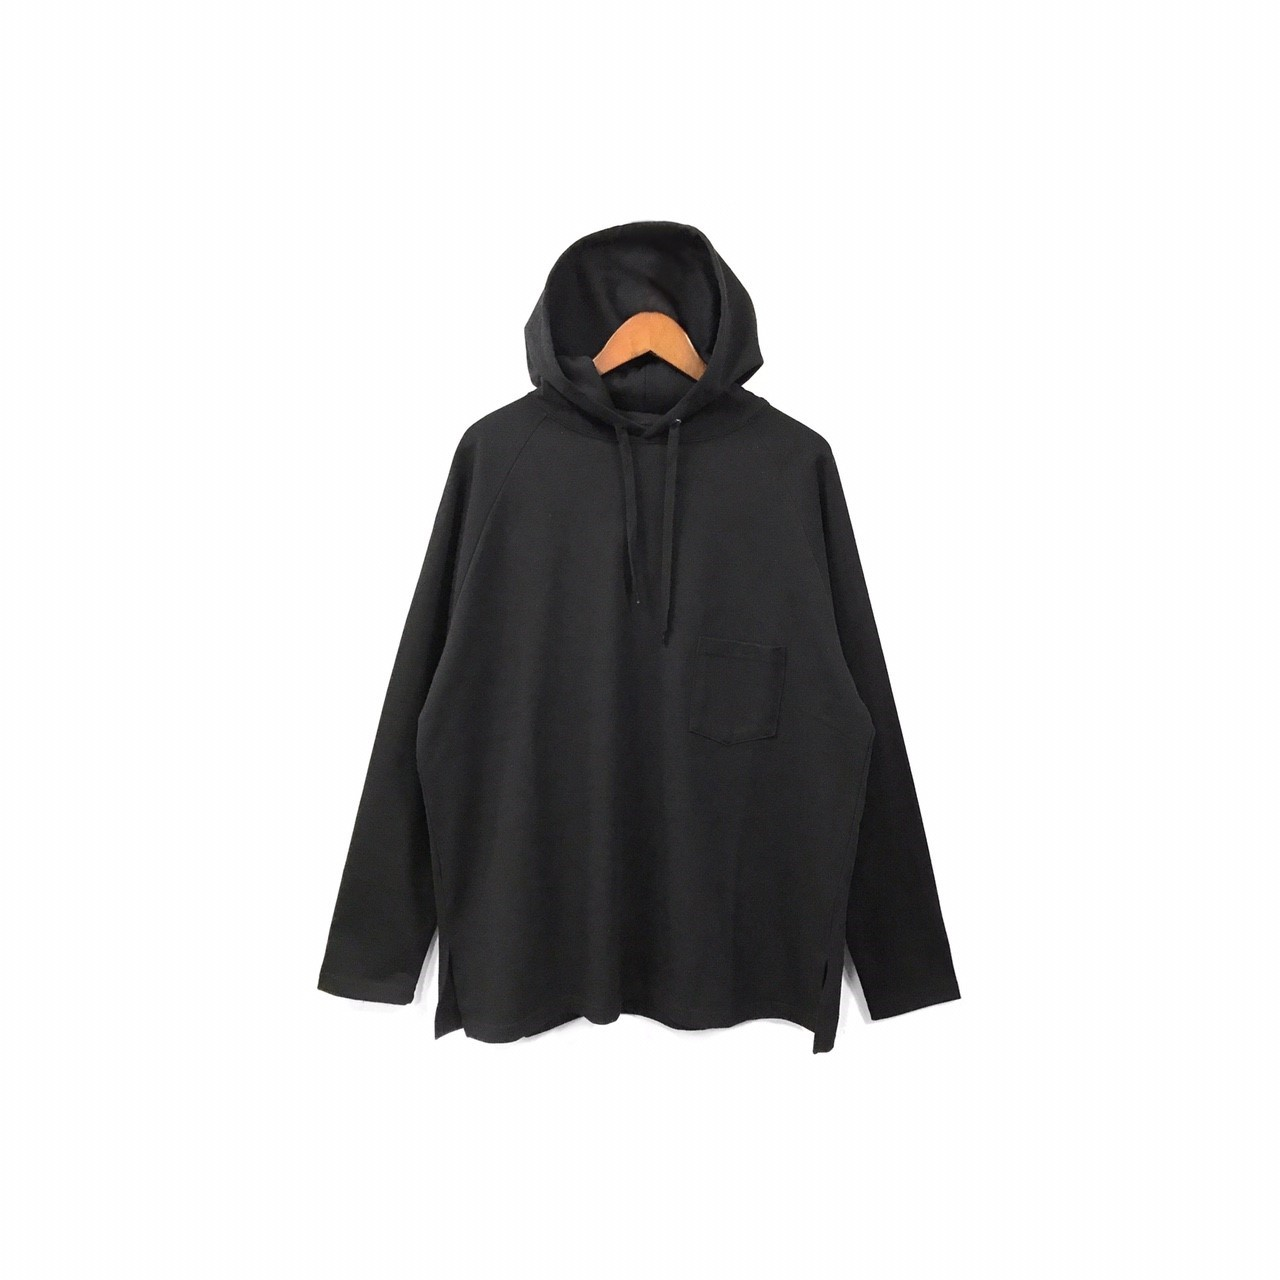 yotsuba - Hooded Cut&Sew / Black ¥12000+tax